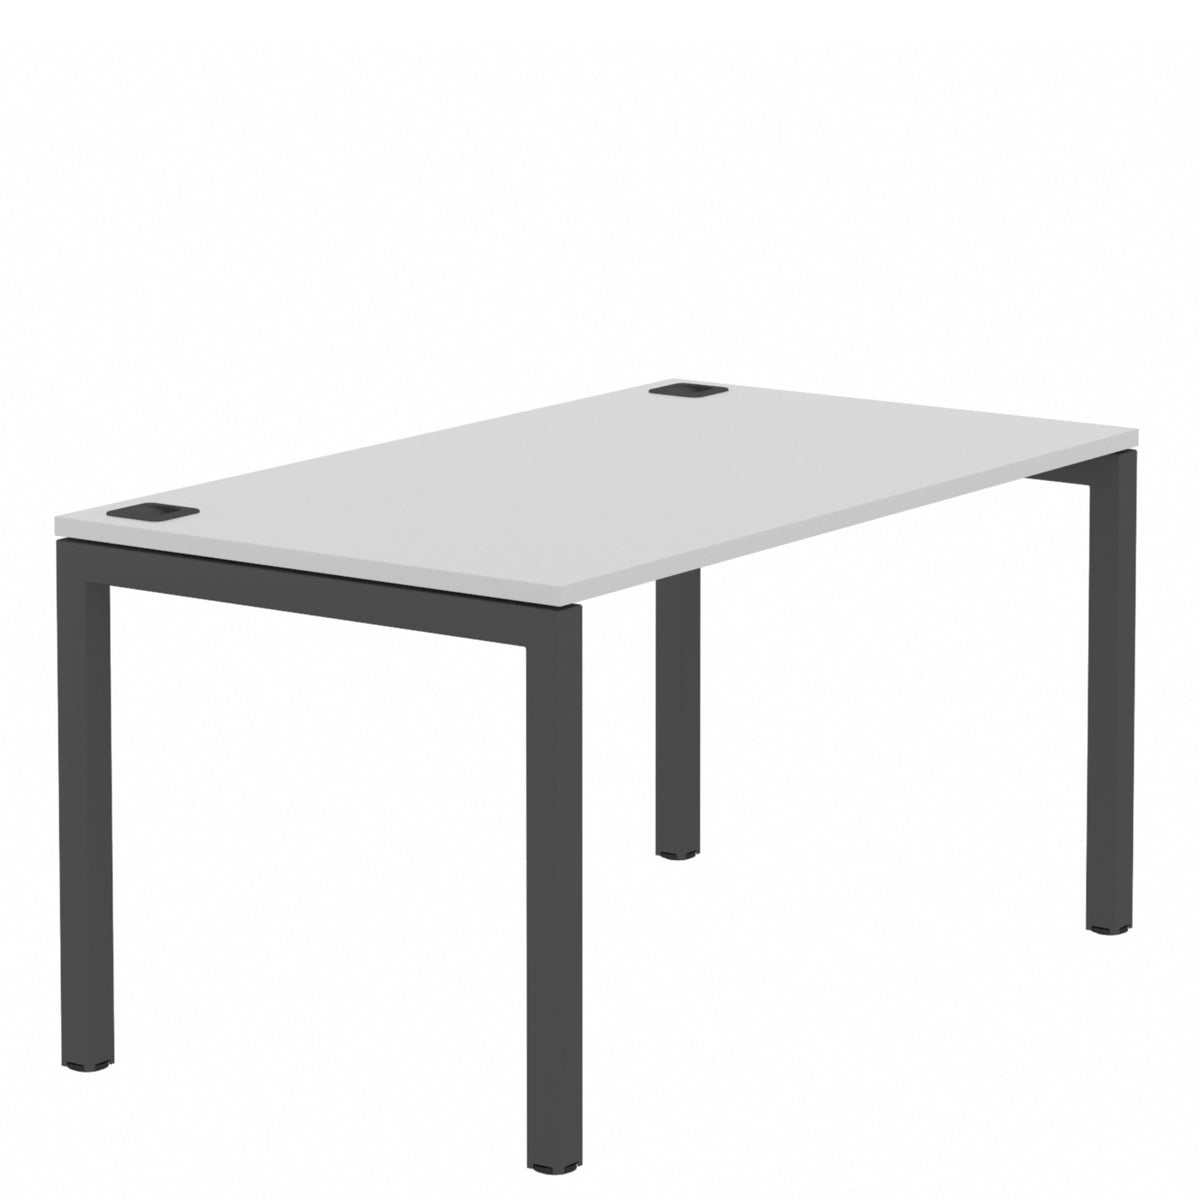 Elite Office Matrix Desk 1200mm White with White Edge